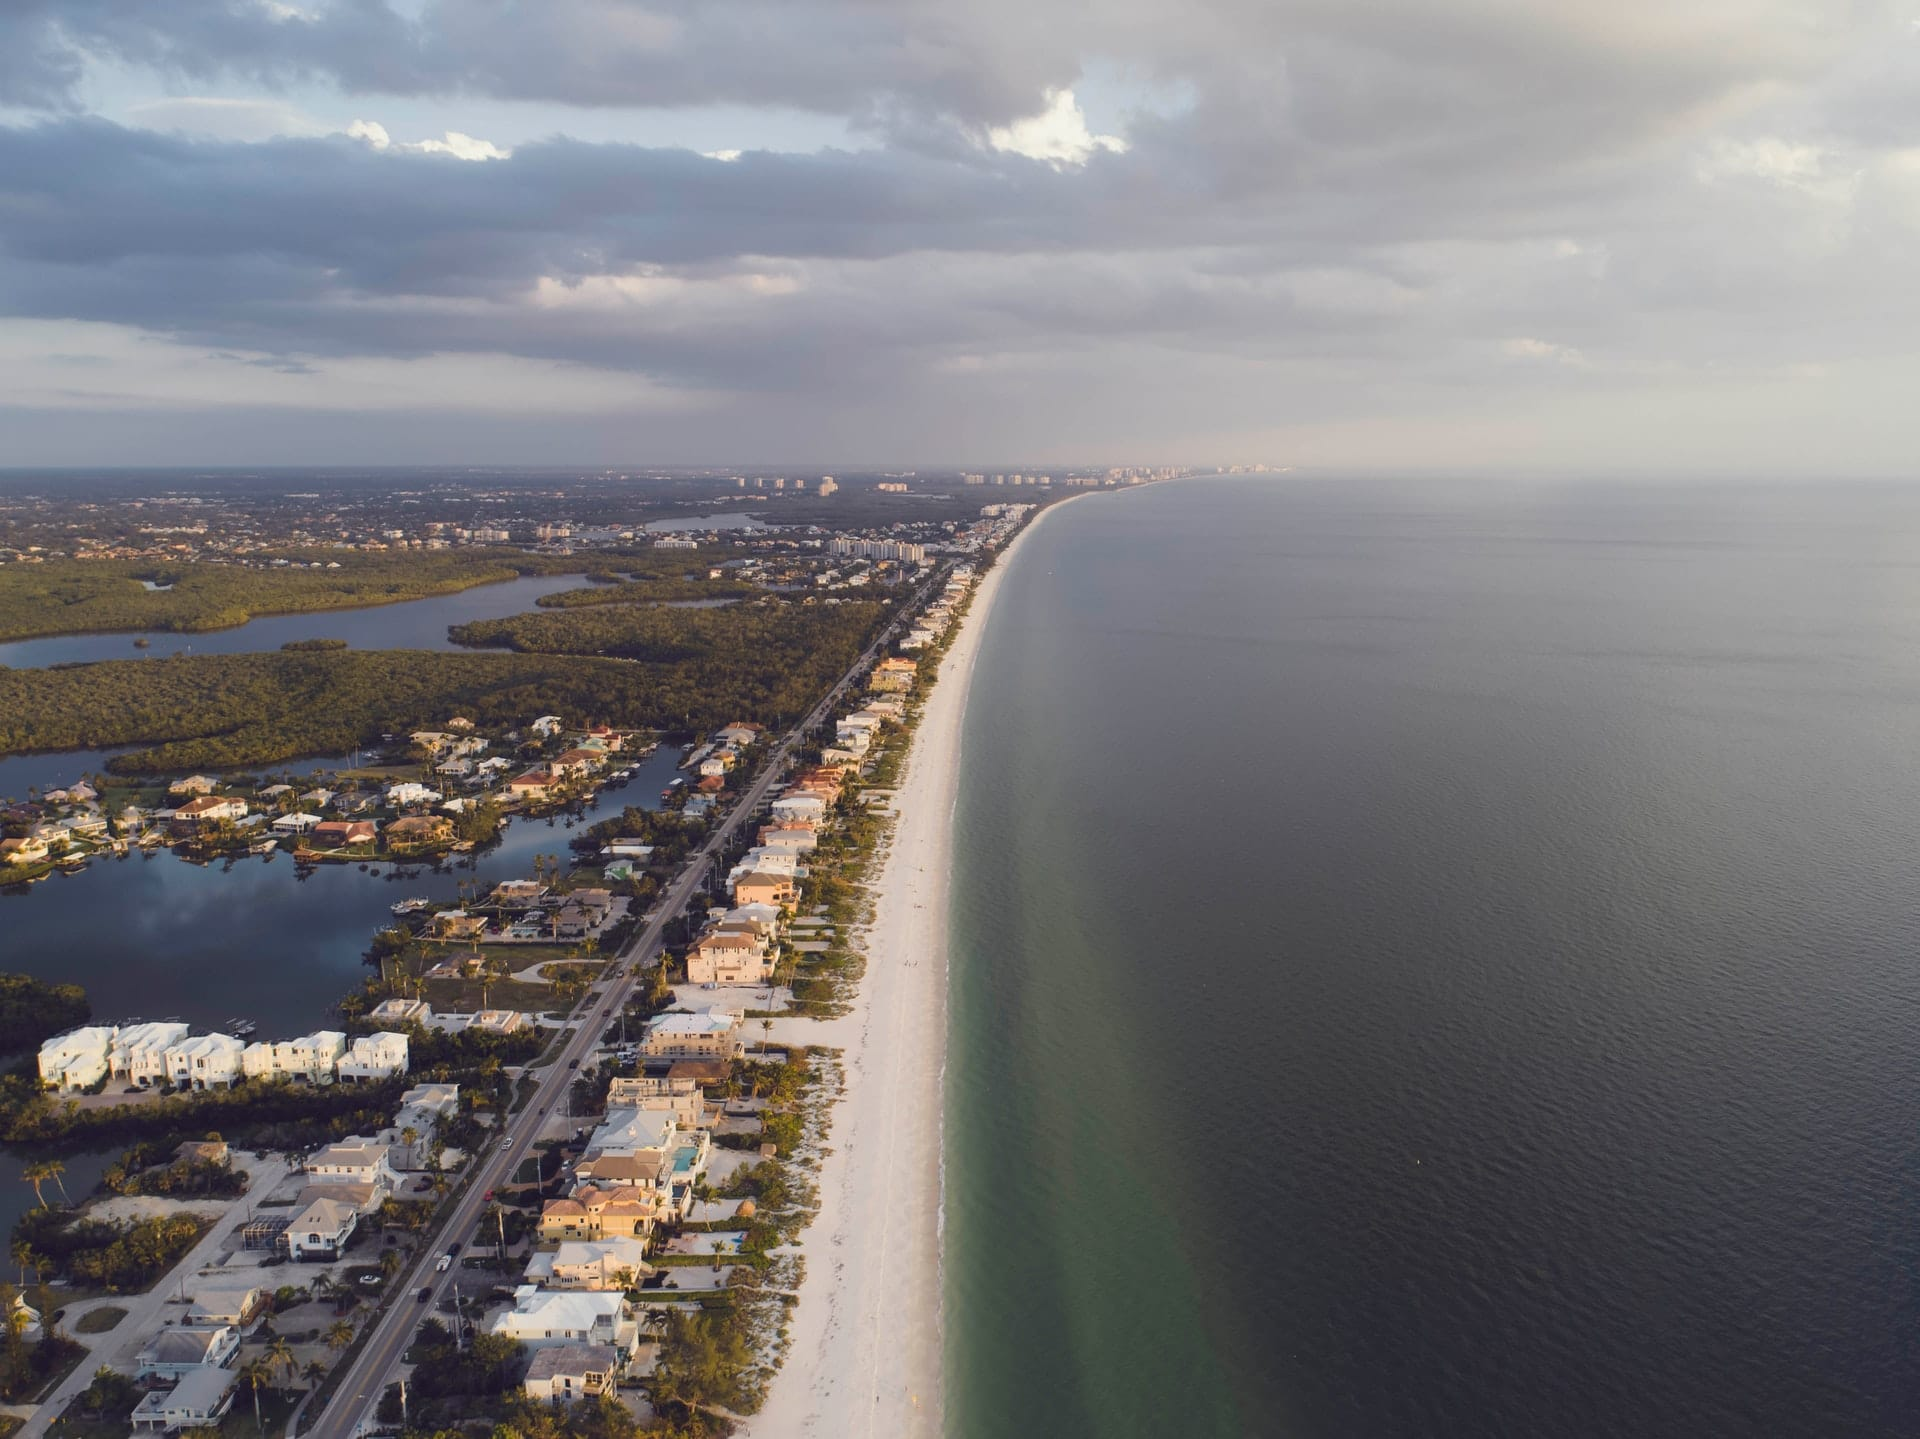 Living in South Florida - What is it like - Pros and Cons